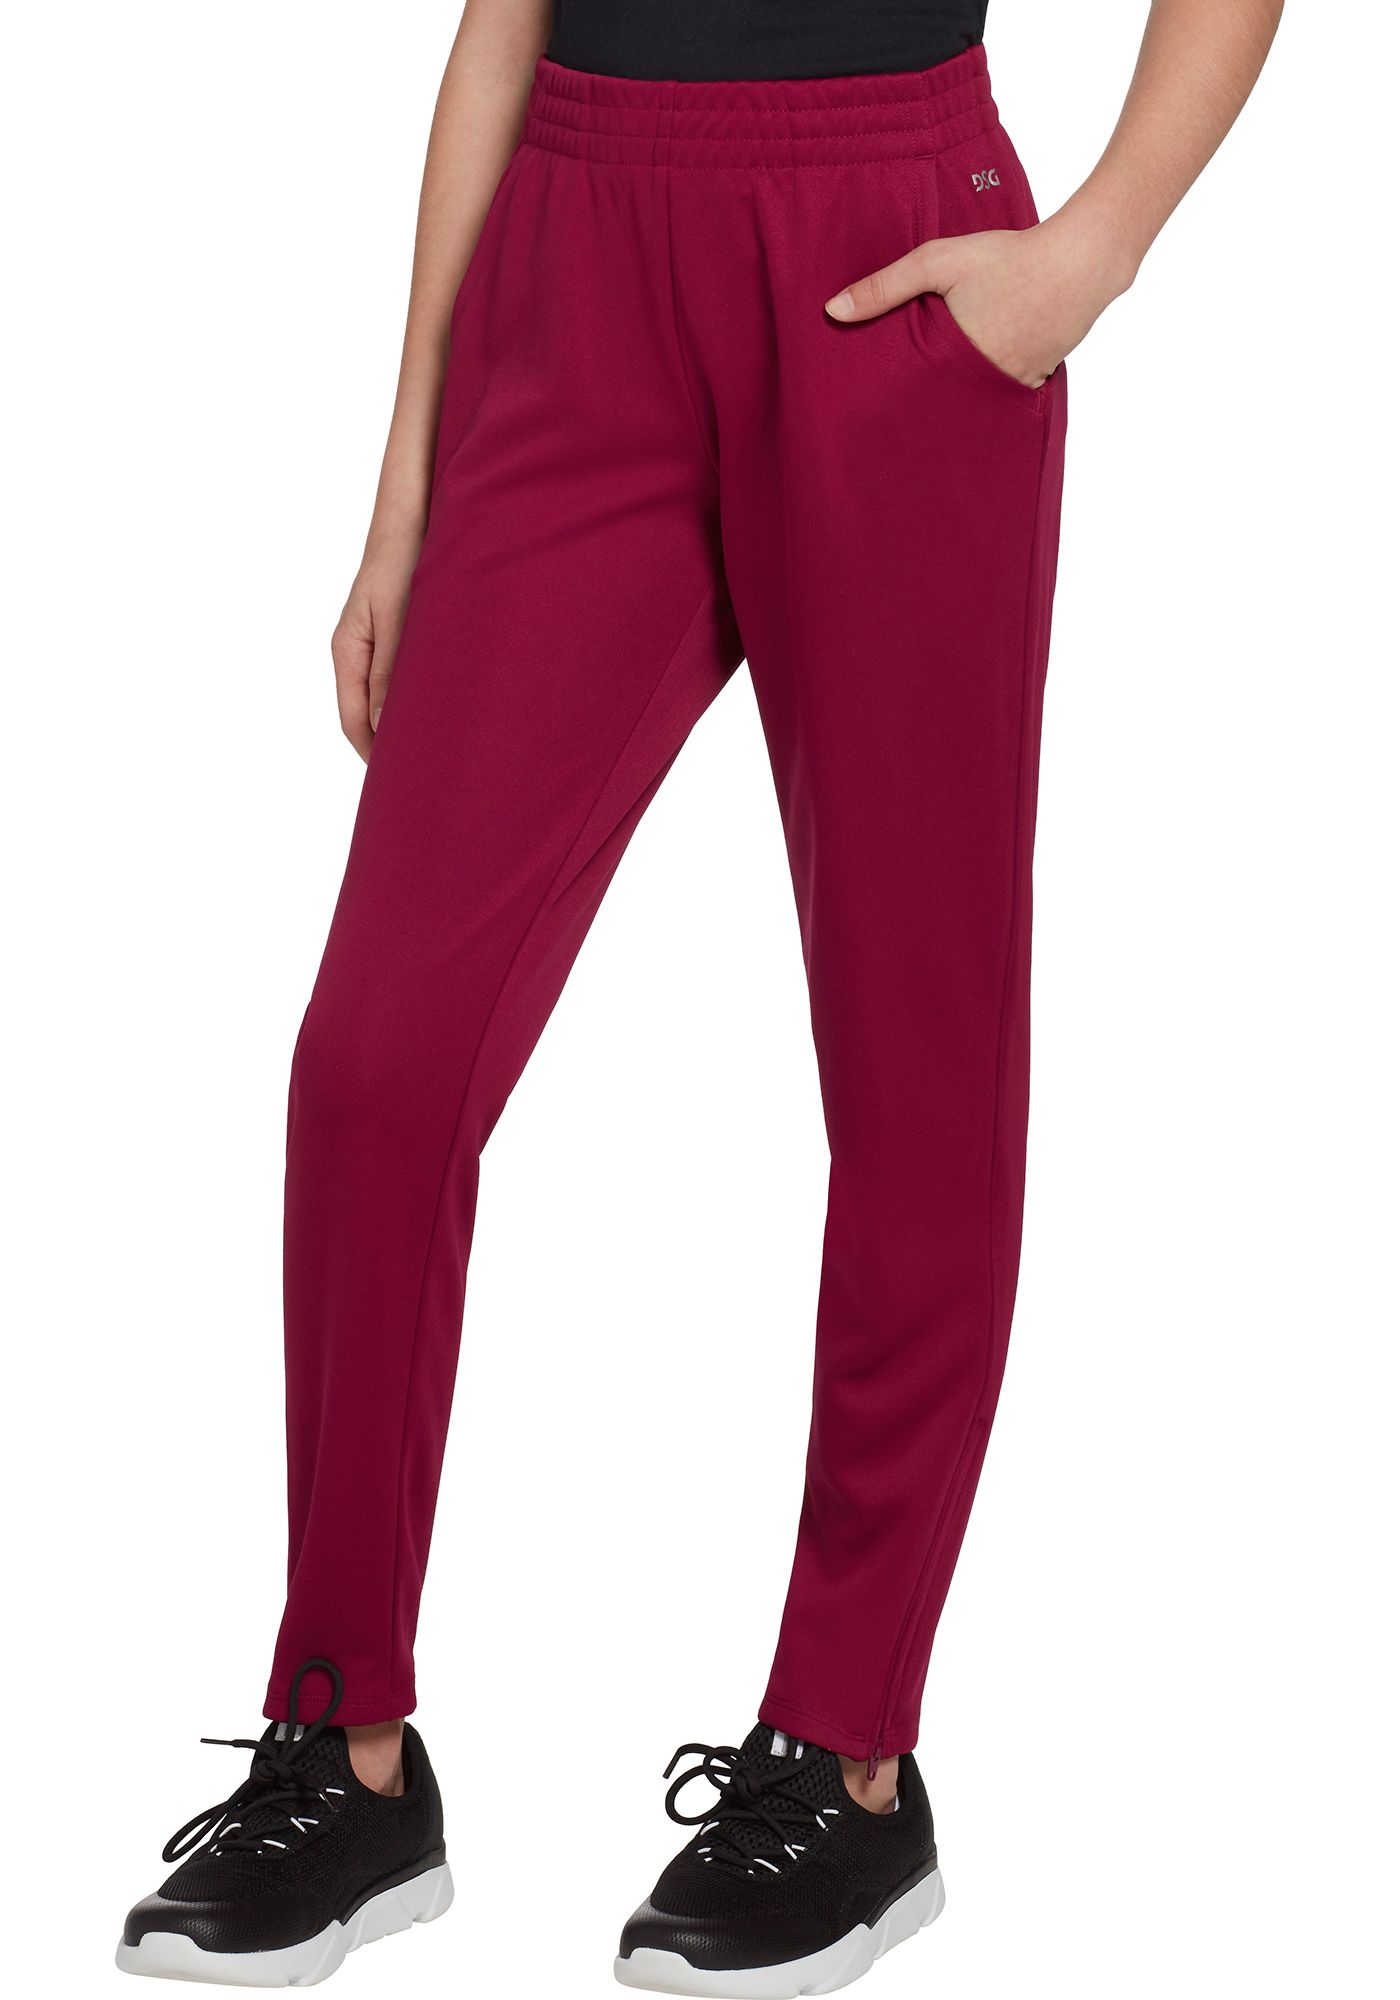 DSG Girls' Performance Tapered Pants